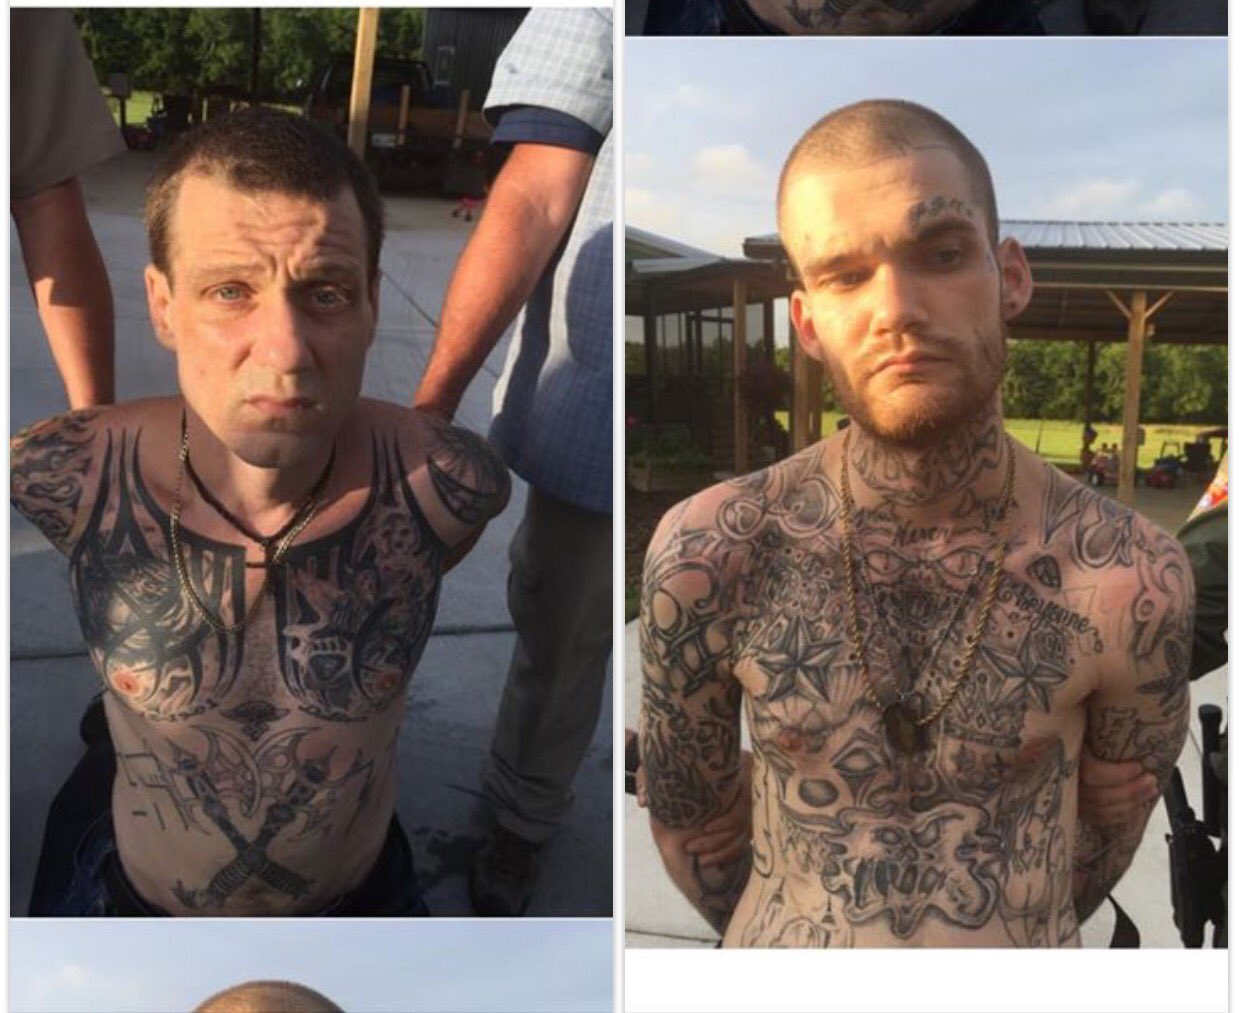 Thumbnail for Escaped Georgia inmates accused of killing officers captured in Tennessee